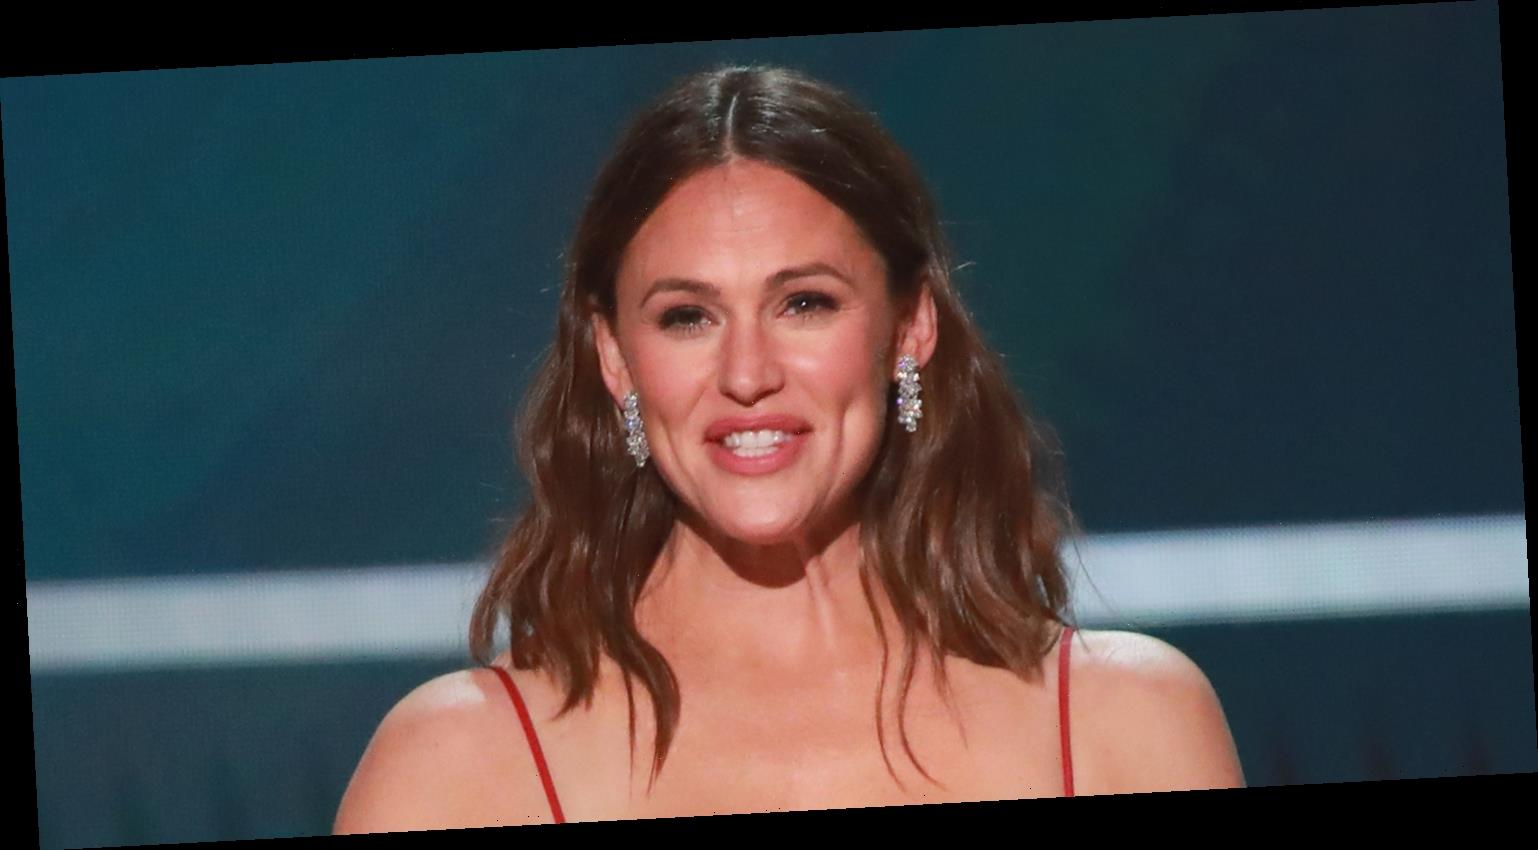 Jennifer Garner Reveals Viewership Numbers For New Netflix Movie 'Yes Day'